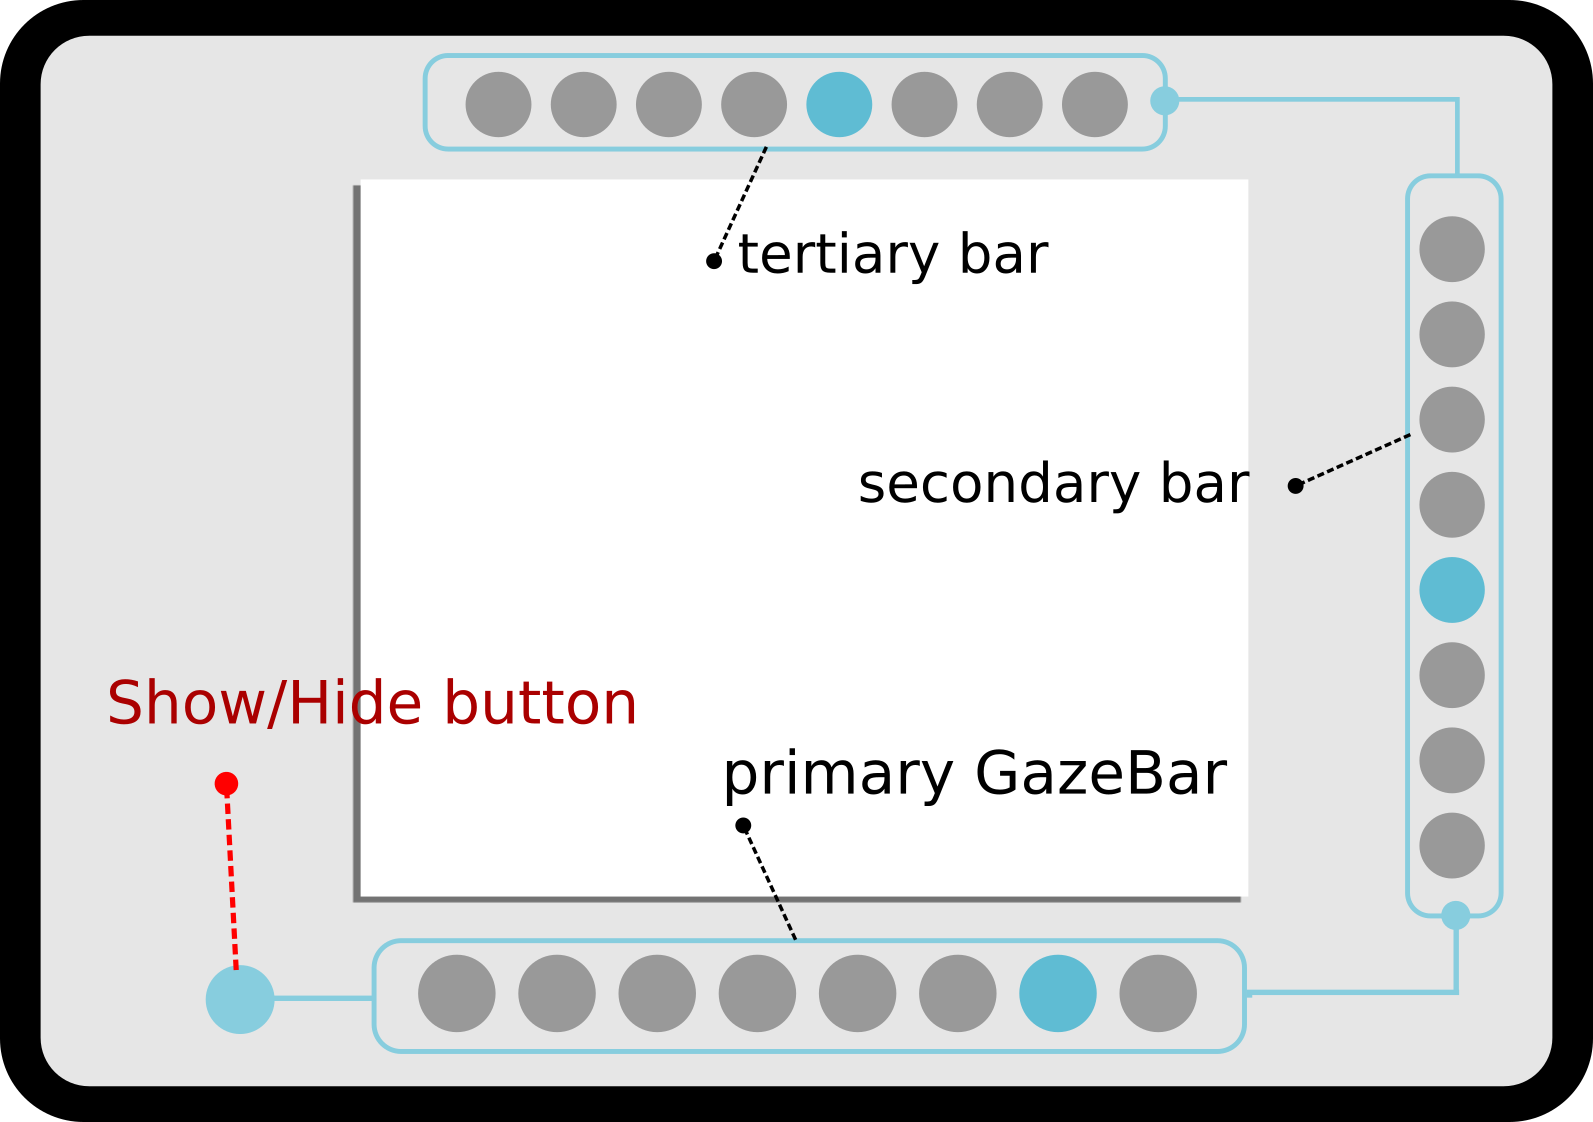 GazeBar: Exploiting the Midas Touch in Gaze Interaction